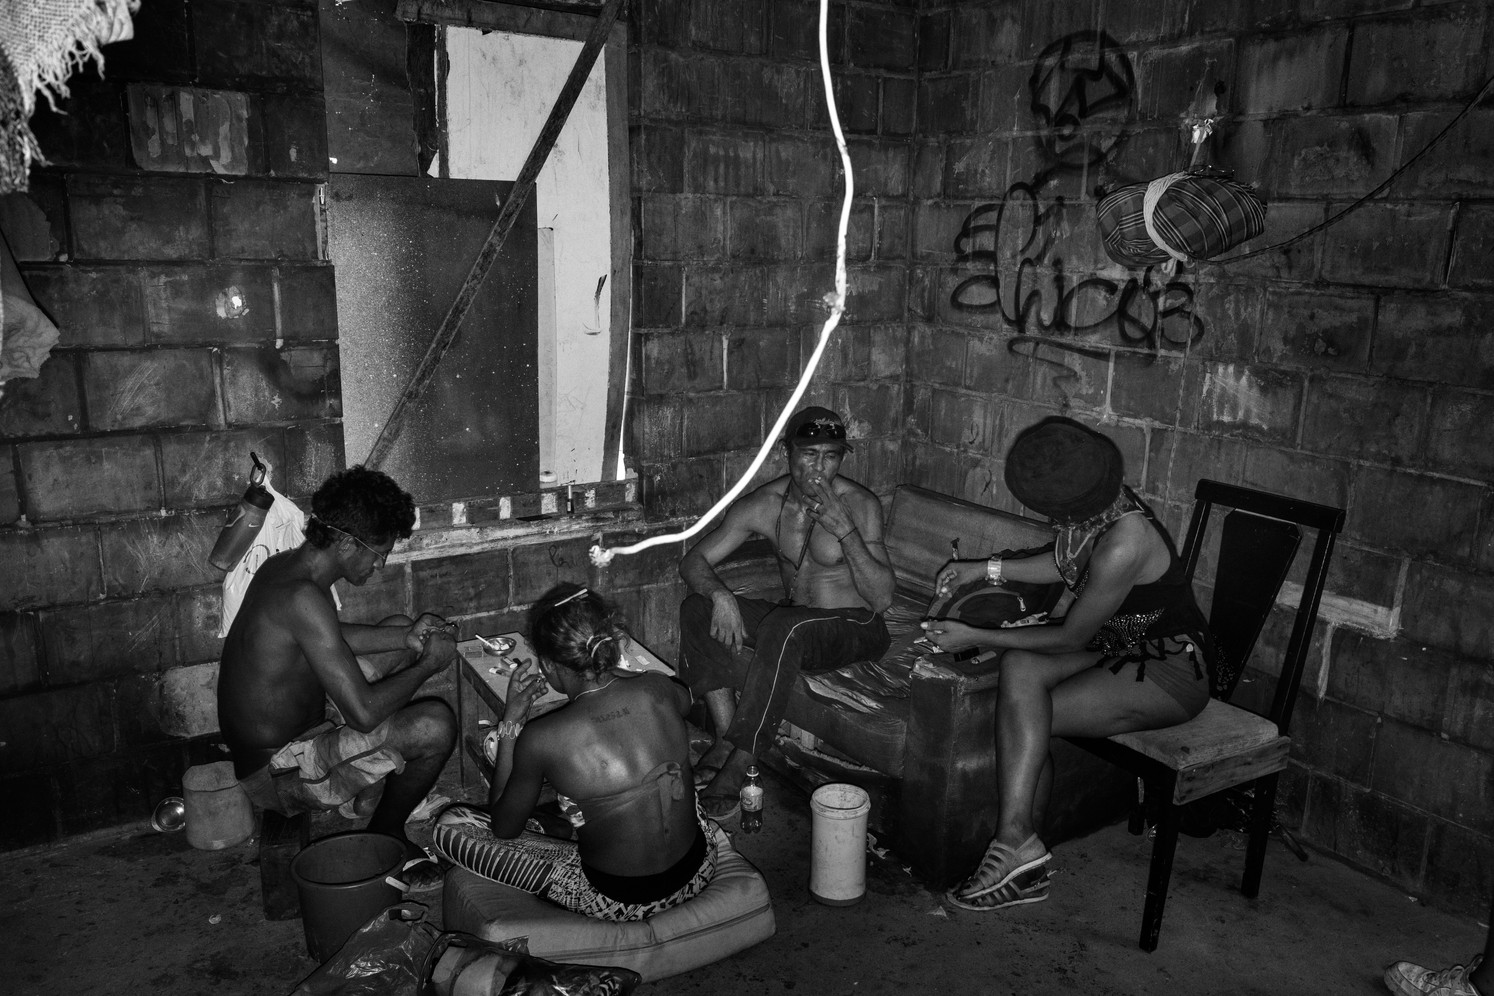 Crack addicts occupy an abandoned public housing lot in Vila da Barca, Belém, the Brazilian Amazon's second biggest city and capital of Pará state. Use of crack and other cheap, smoked cocaine derivatives has exploded in the Amazon states in the last decade. Addicts often stay awake for days at a time smoking. While rocks of crack often sell for as little as US$1, addicts regularly rack up large debts with dealers. Those that don't pay are murdered.